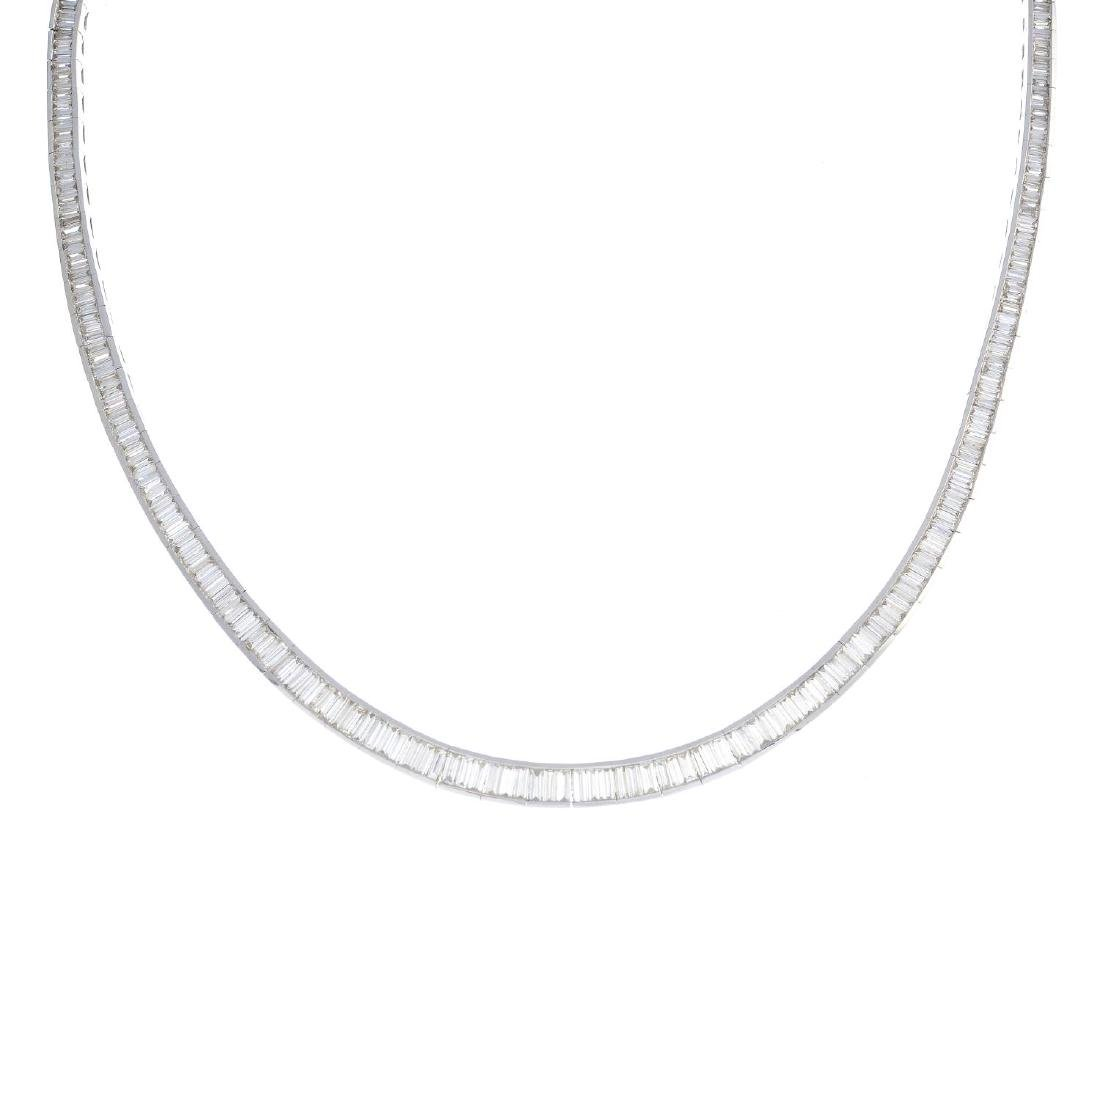 A diamond necklace. The slightly graduated baguette-cut